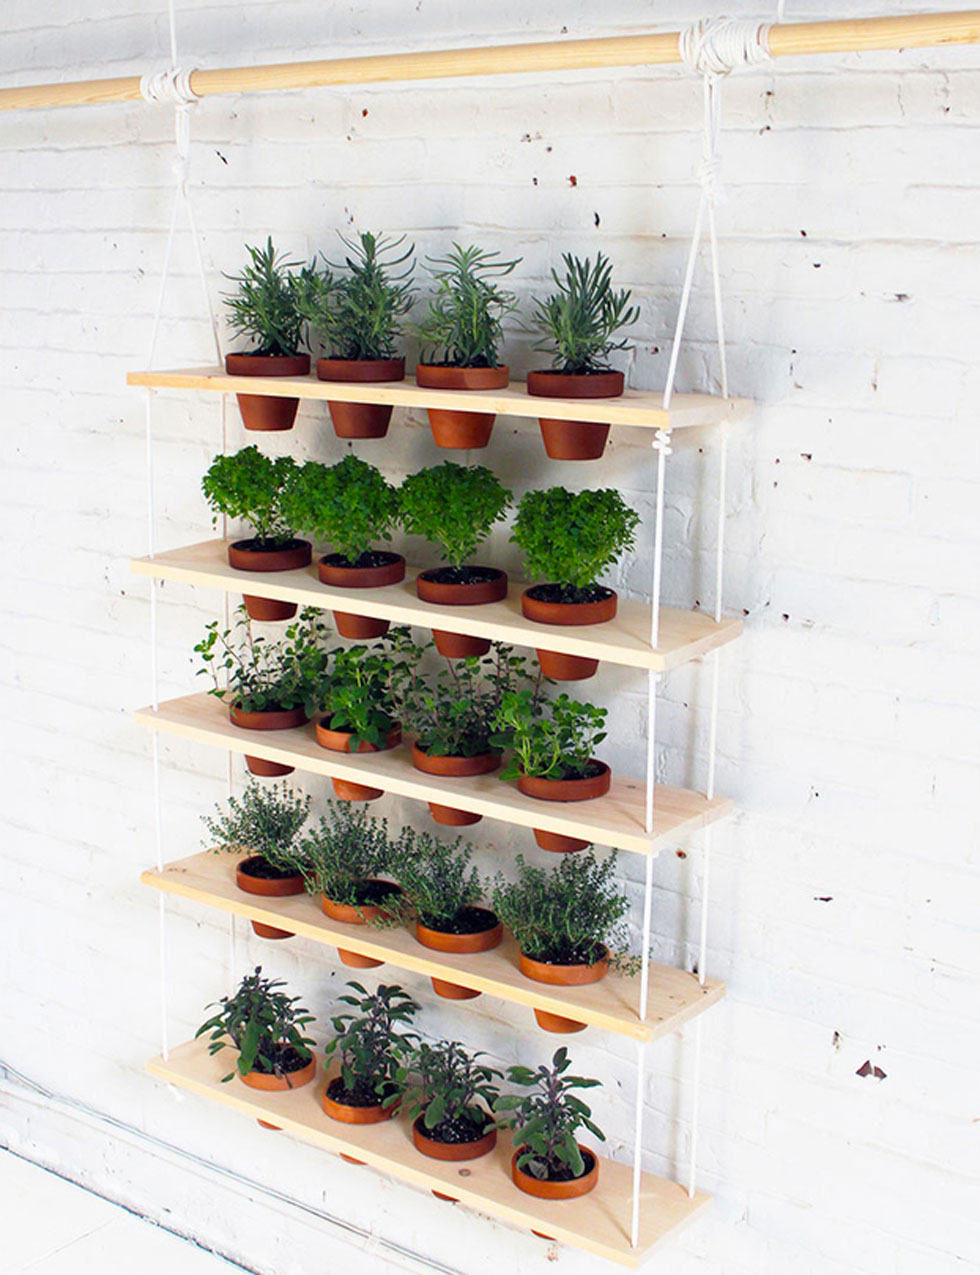 Hanging Garden Ideas outdoor decorating ideas vertical gardens and hanging gardens 26 Creative Ways To Plant A Vertical Garden How To Make A Vertical Garden